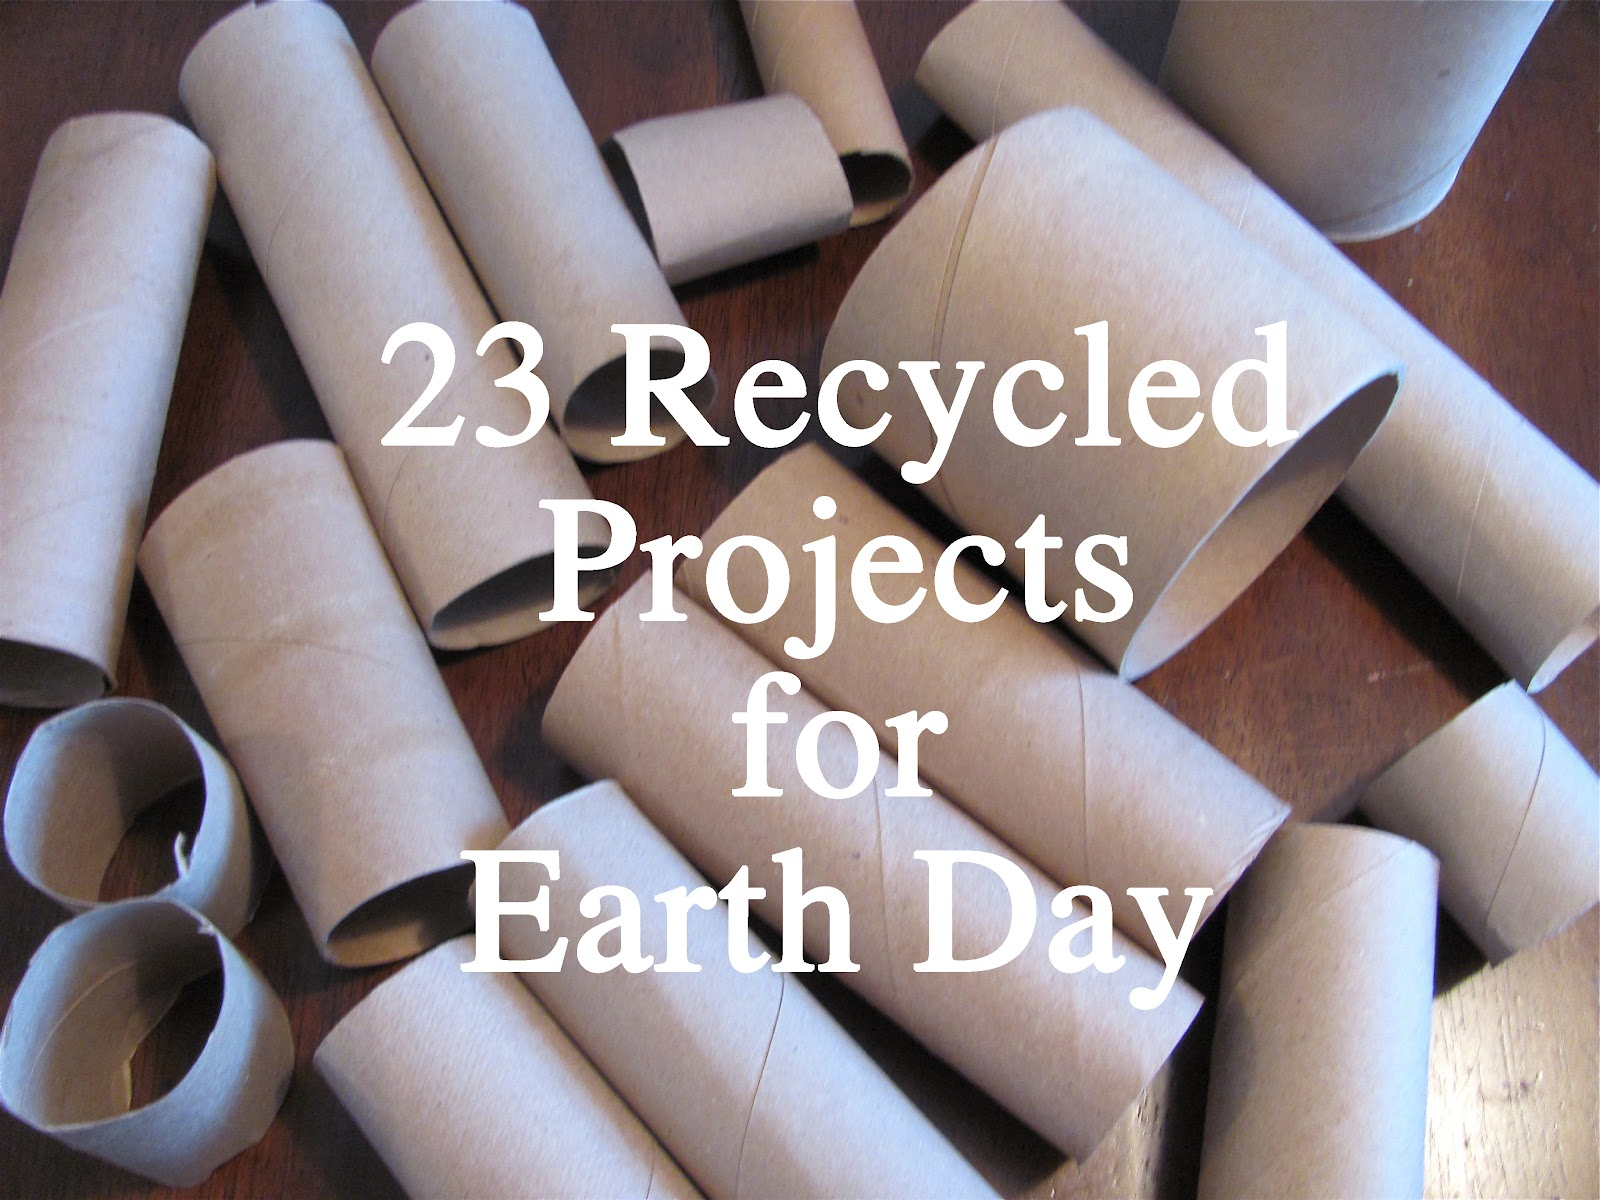 The chocolate muffin tree 23 recycled projects for earth day for Easy recycling ideas